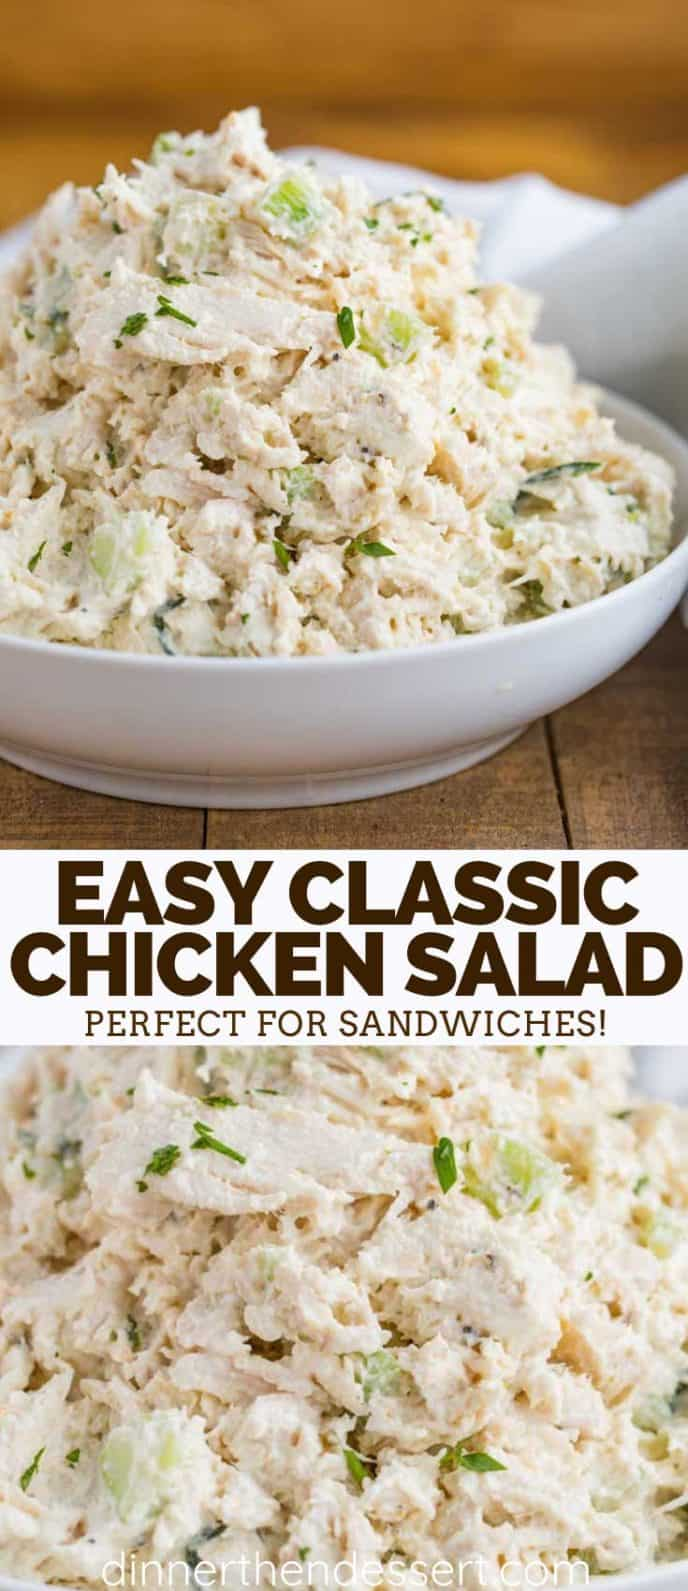 Easy Chicken Salad for Sandwiches